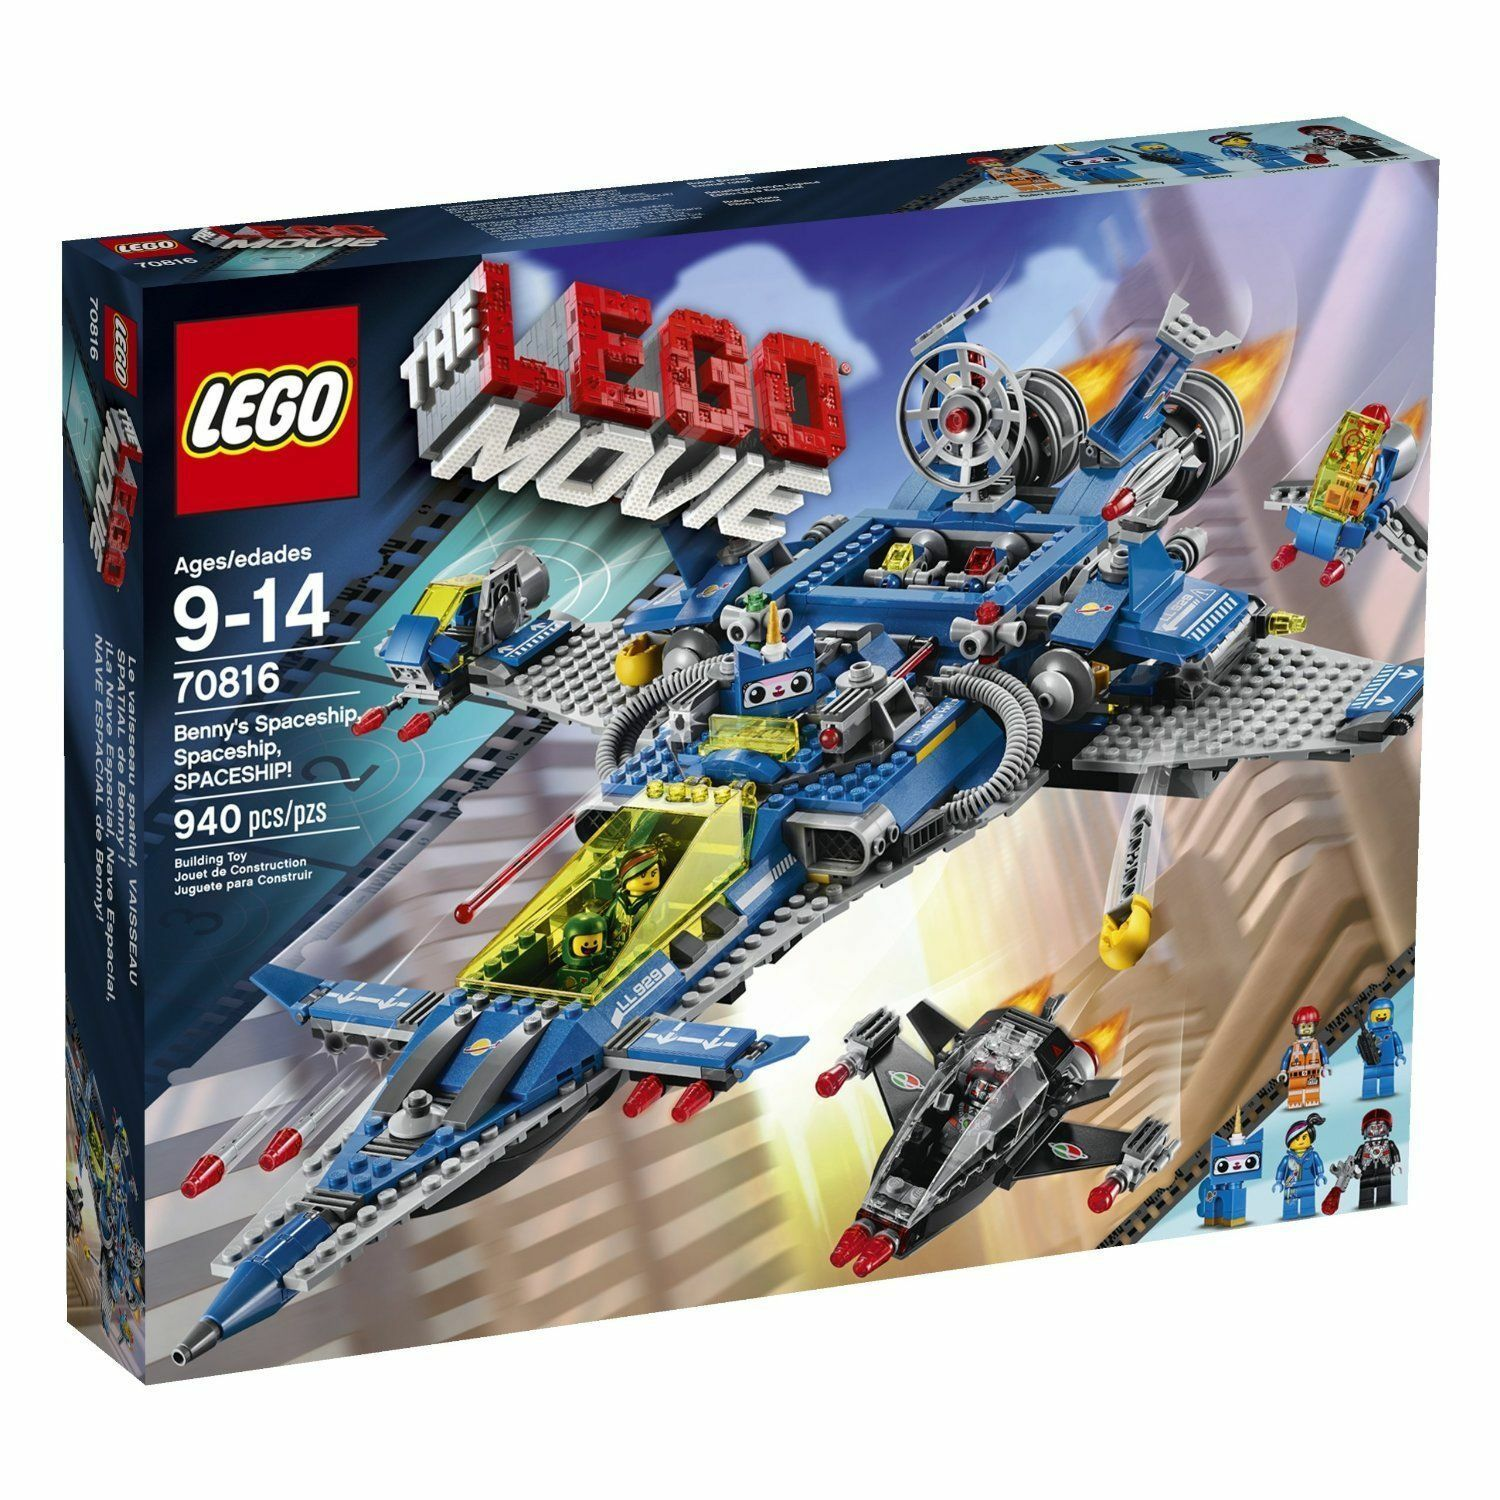 70816 Benny's SPACESHIP lego NEW movie misb space emmit kitty wyldstyle astro